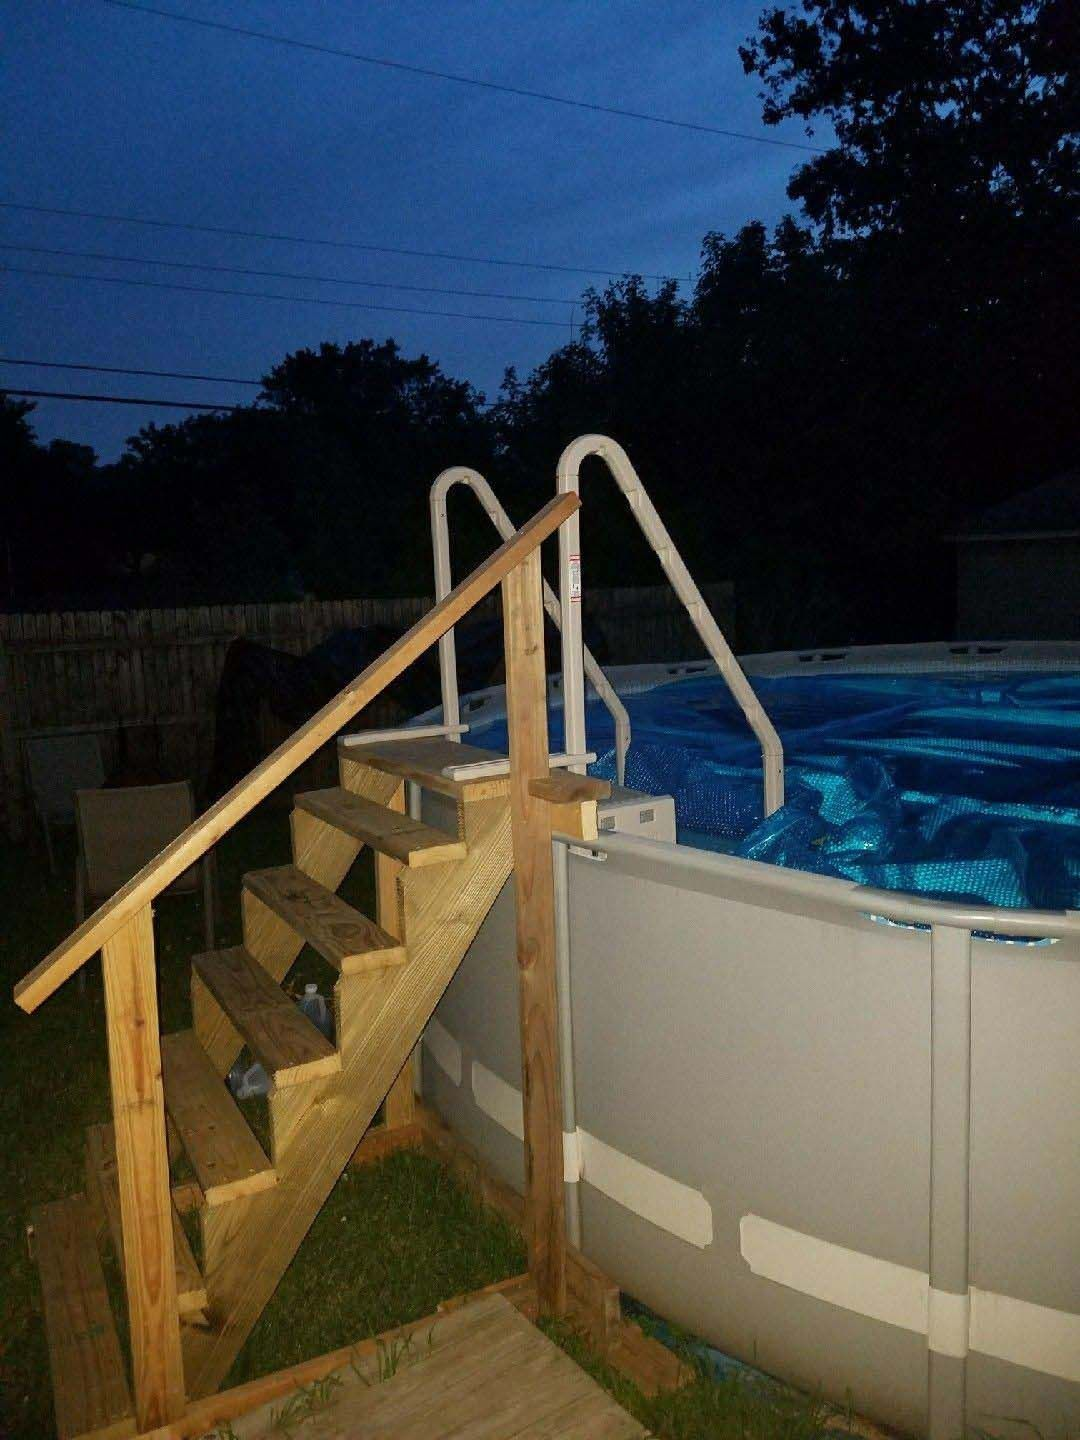 How to open an above ground pool for the first time in